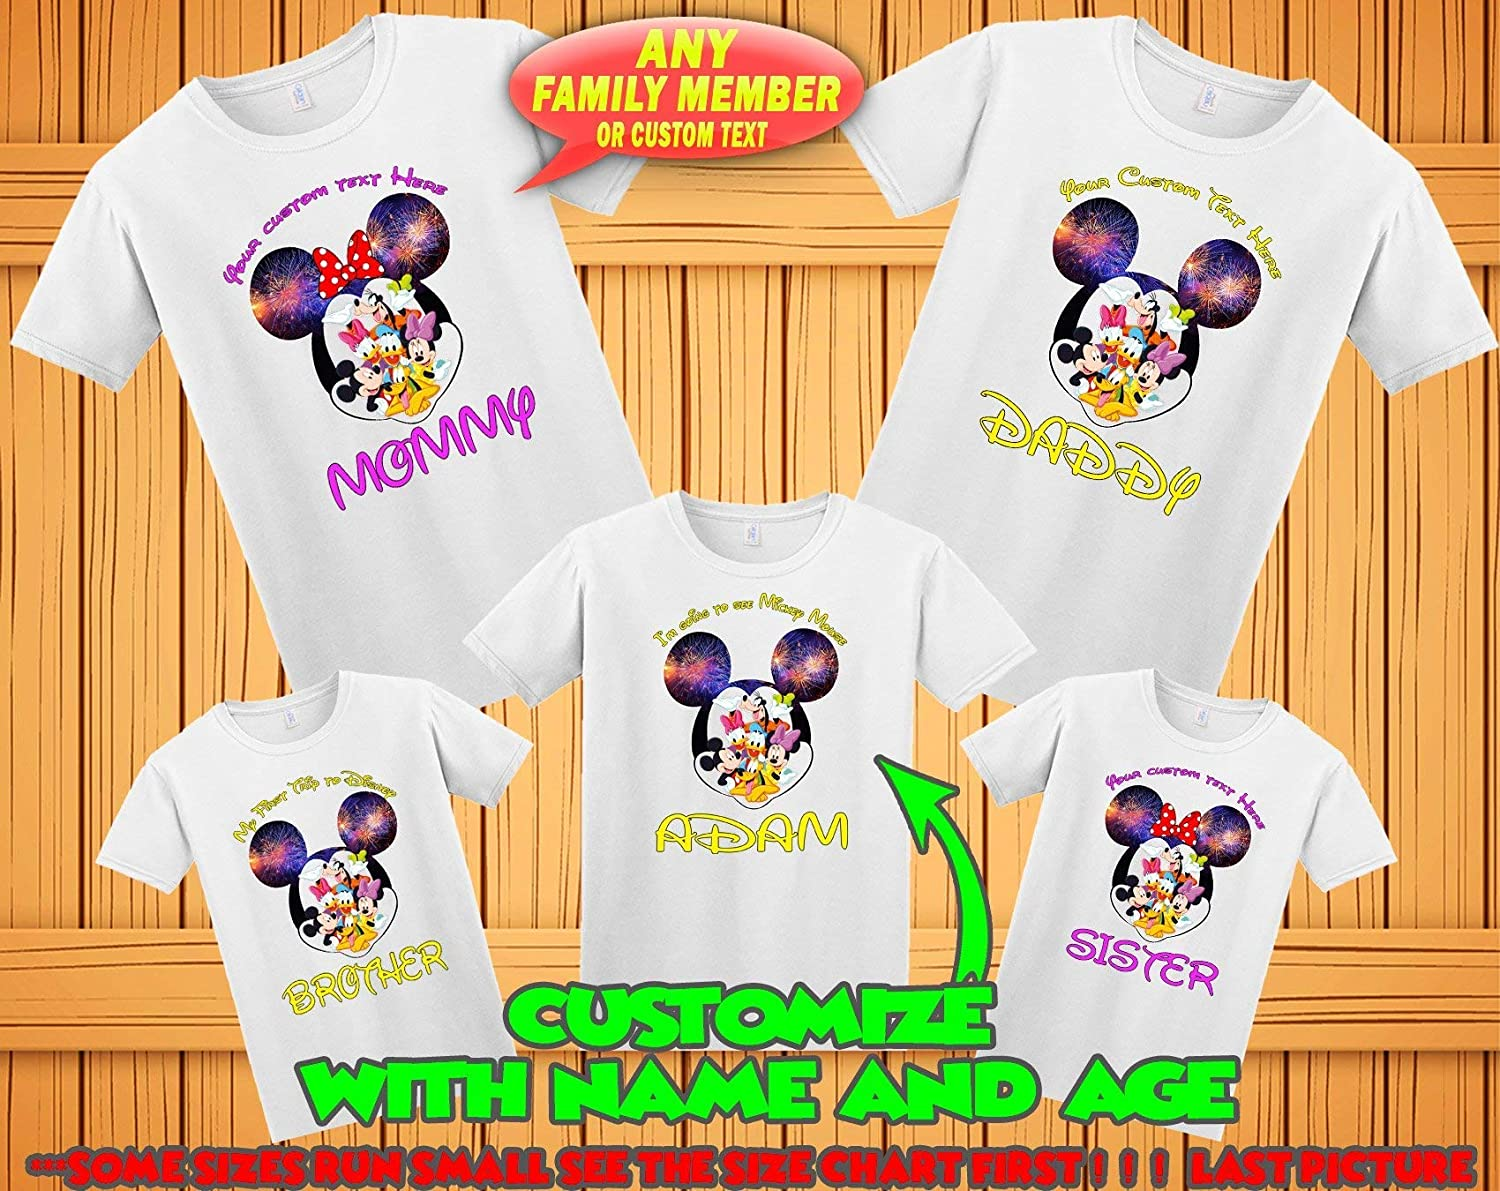 d7ba3f49 Mickey Minnie Mouse family matching tshirts, birthday Disney family matching  custom t-shirts, Family vacation disney shirts, custom Personalized disney  ...